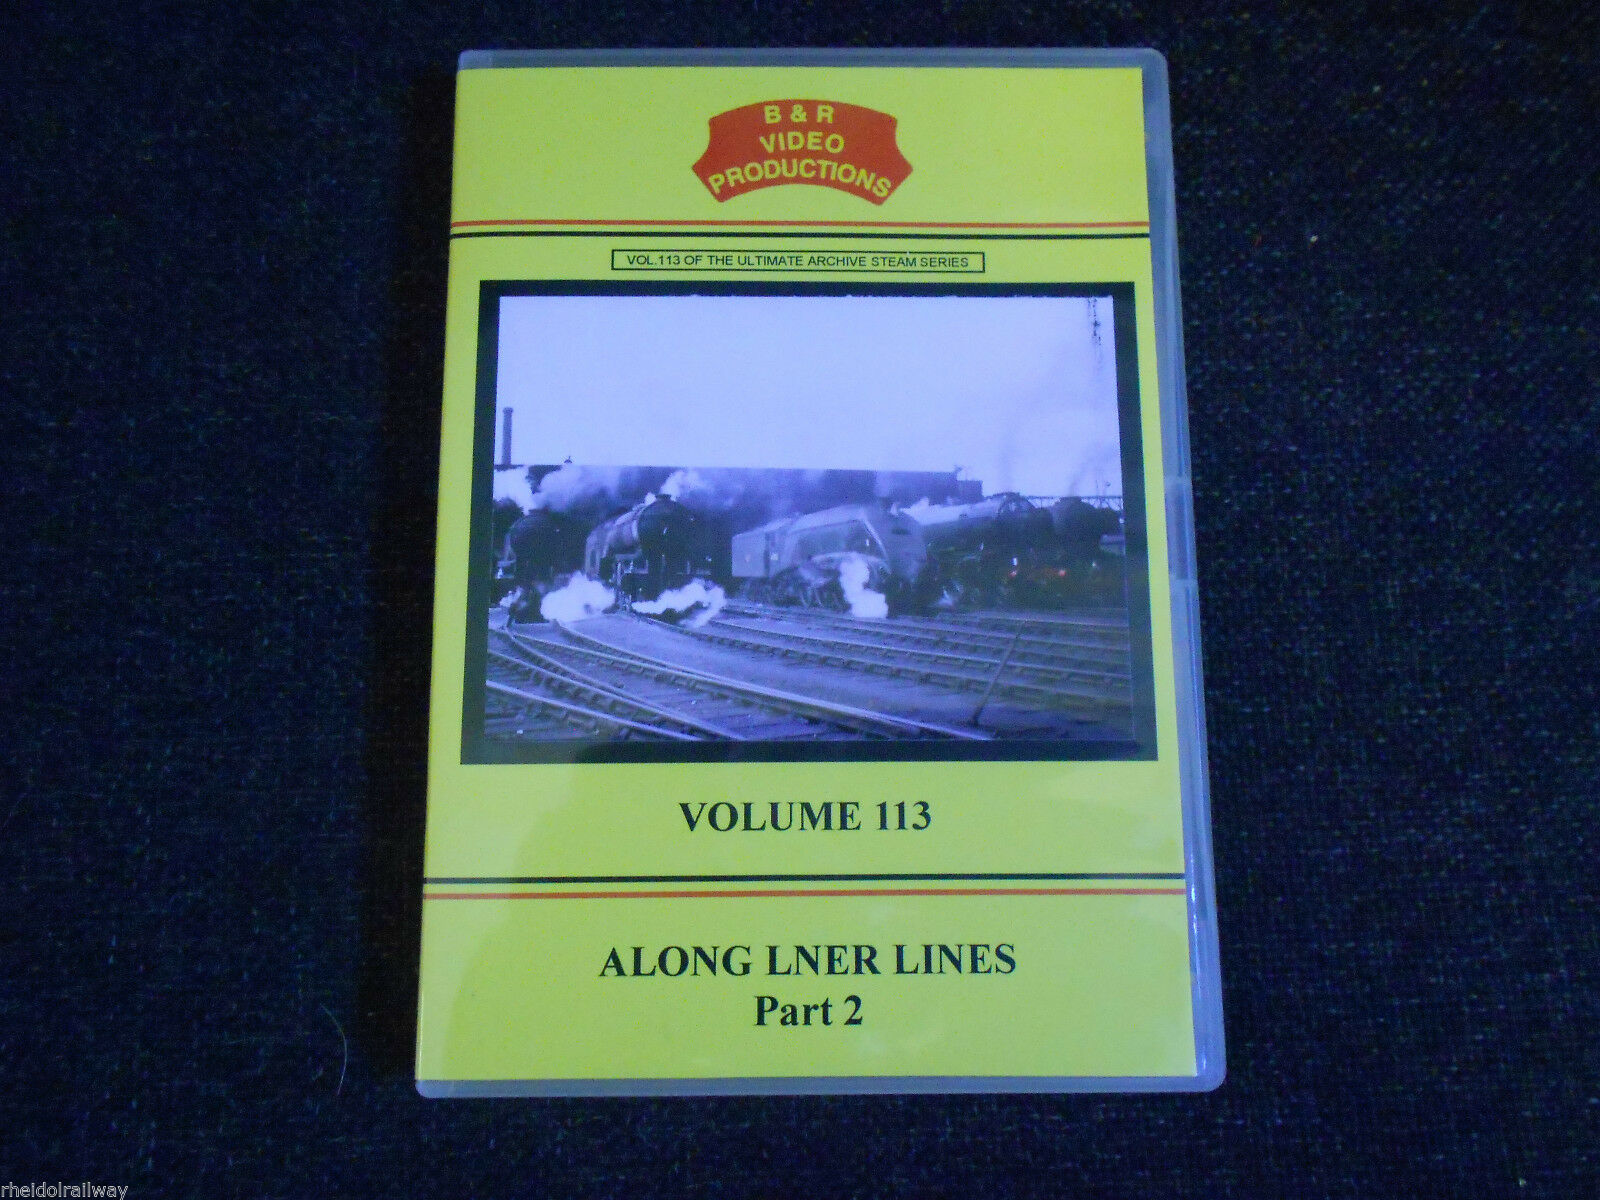 Kings Cross, York, Flying Scotsman, Along LNER Lines Part 2, B&R Vol 113 DVD